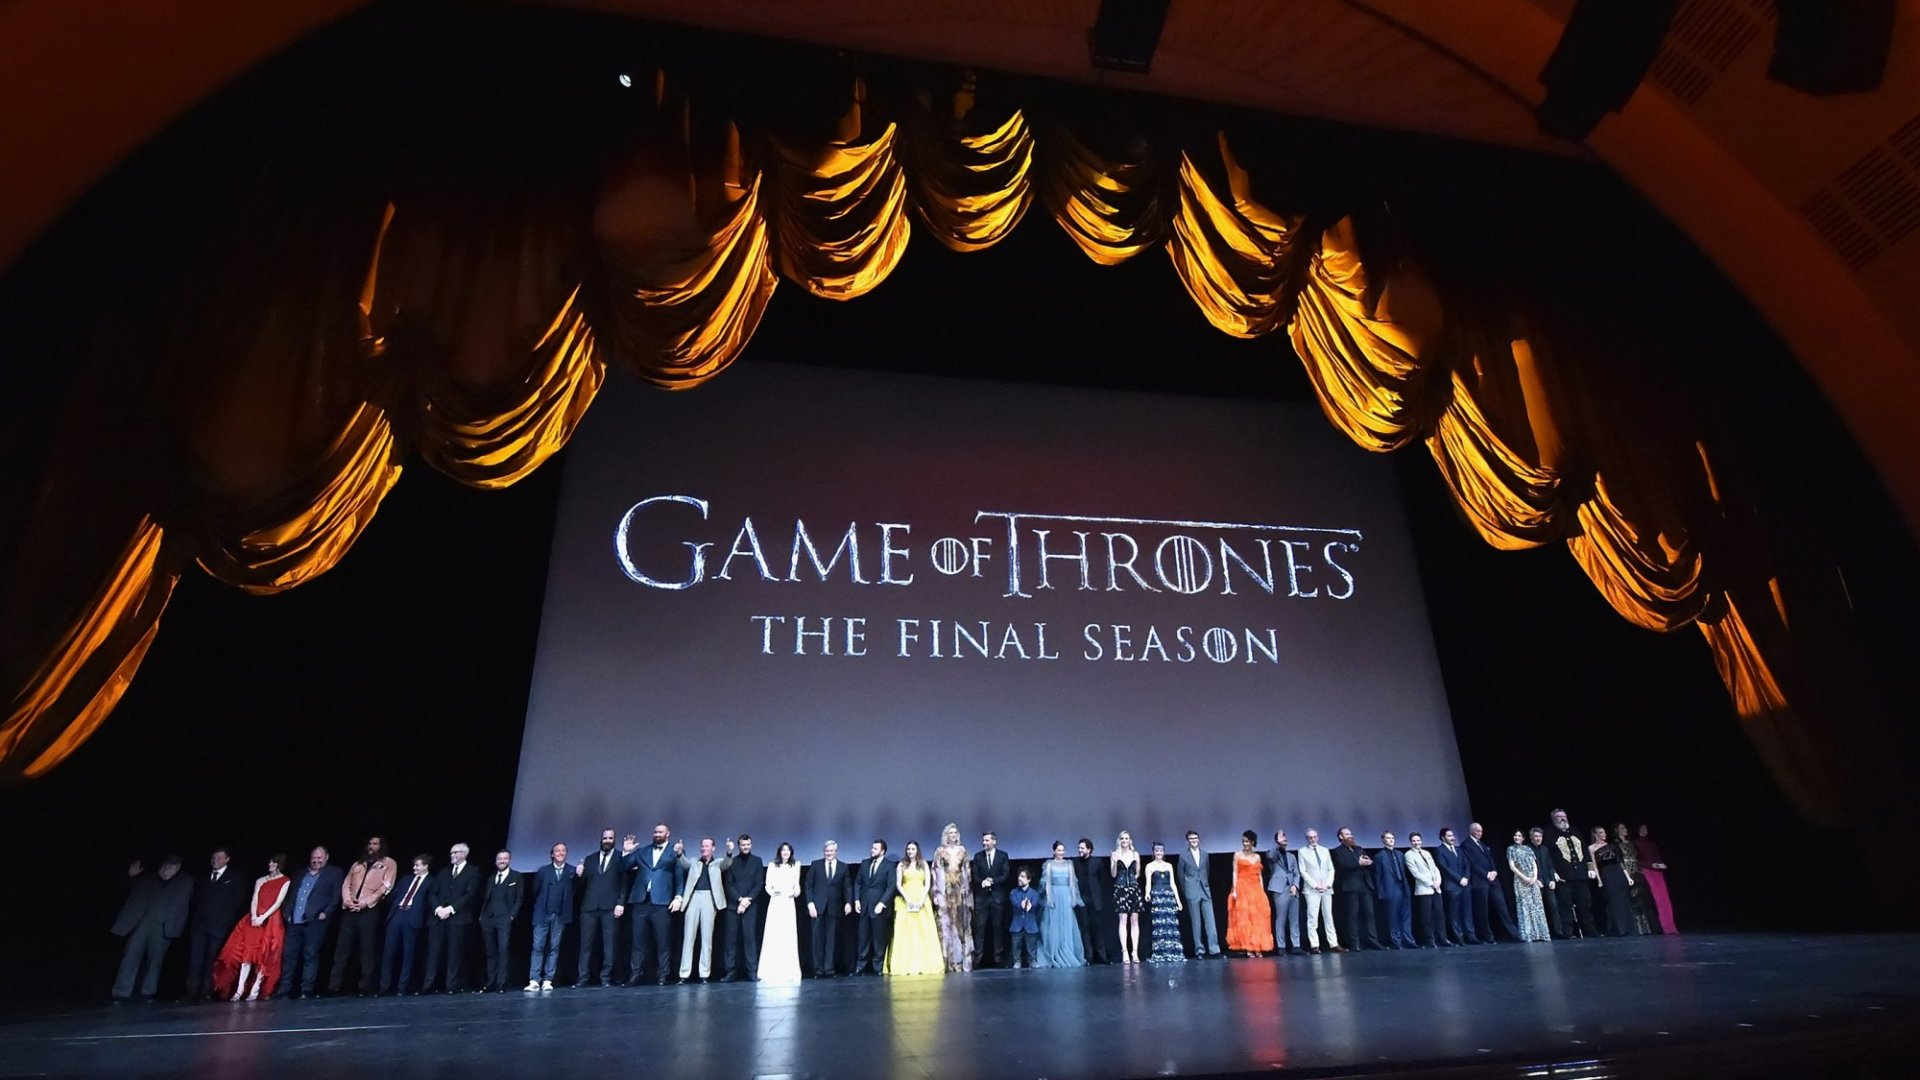 'Game of Thrones' Finale Sparks the Internet's Outrage. Here's Why